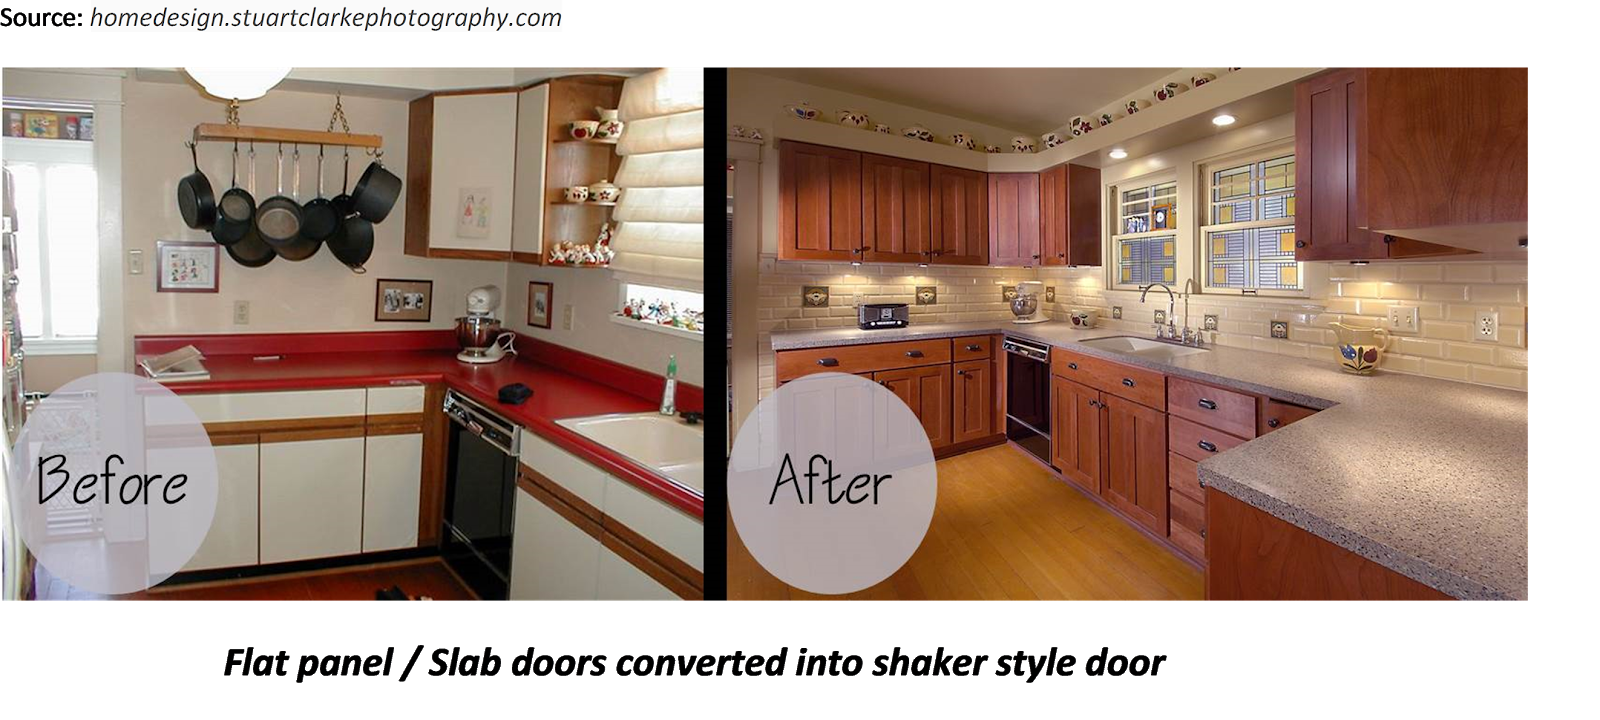 Restore Reuse Or Replace Your Cabinet Doors Mip Wood Designs